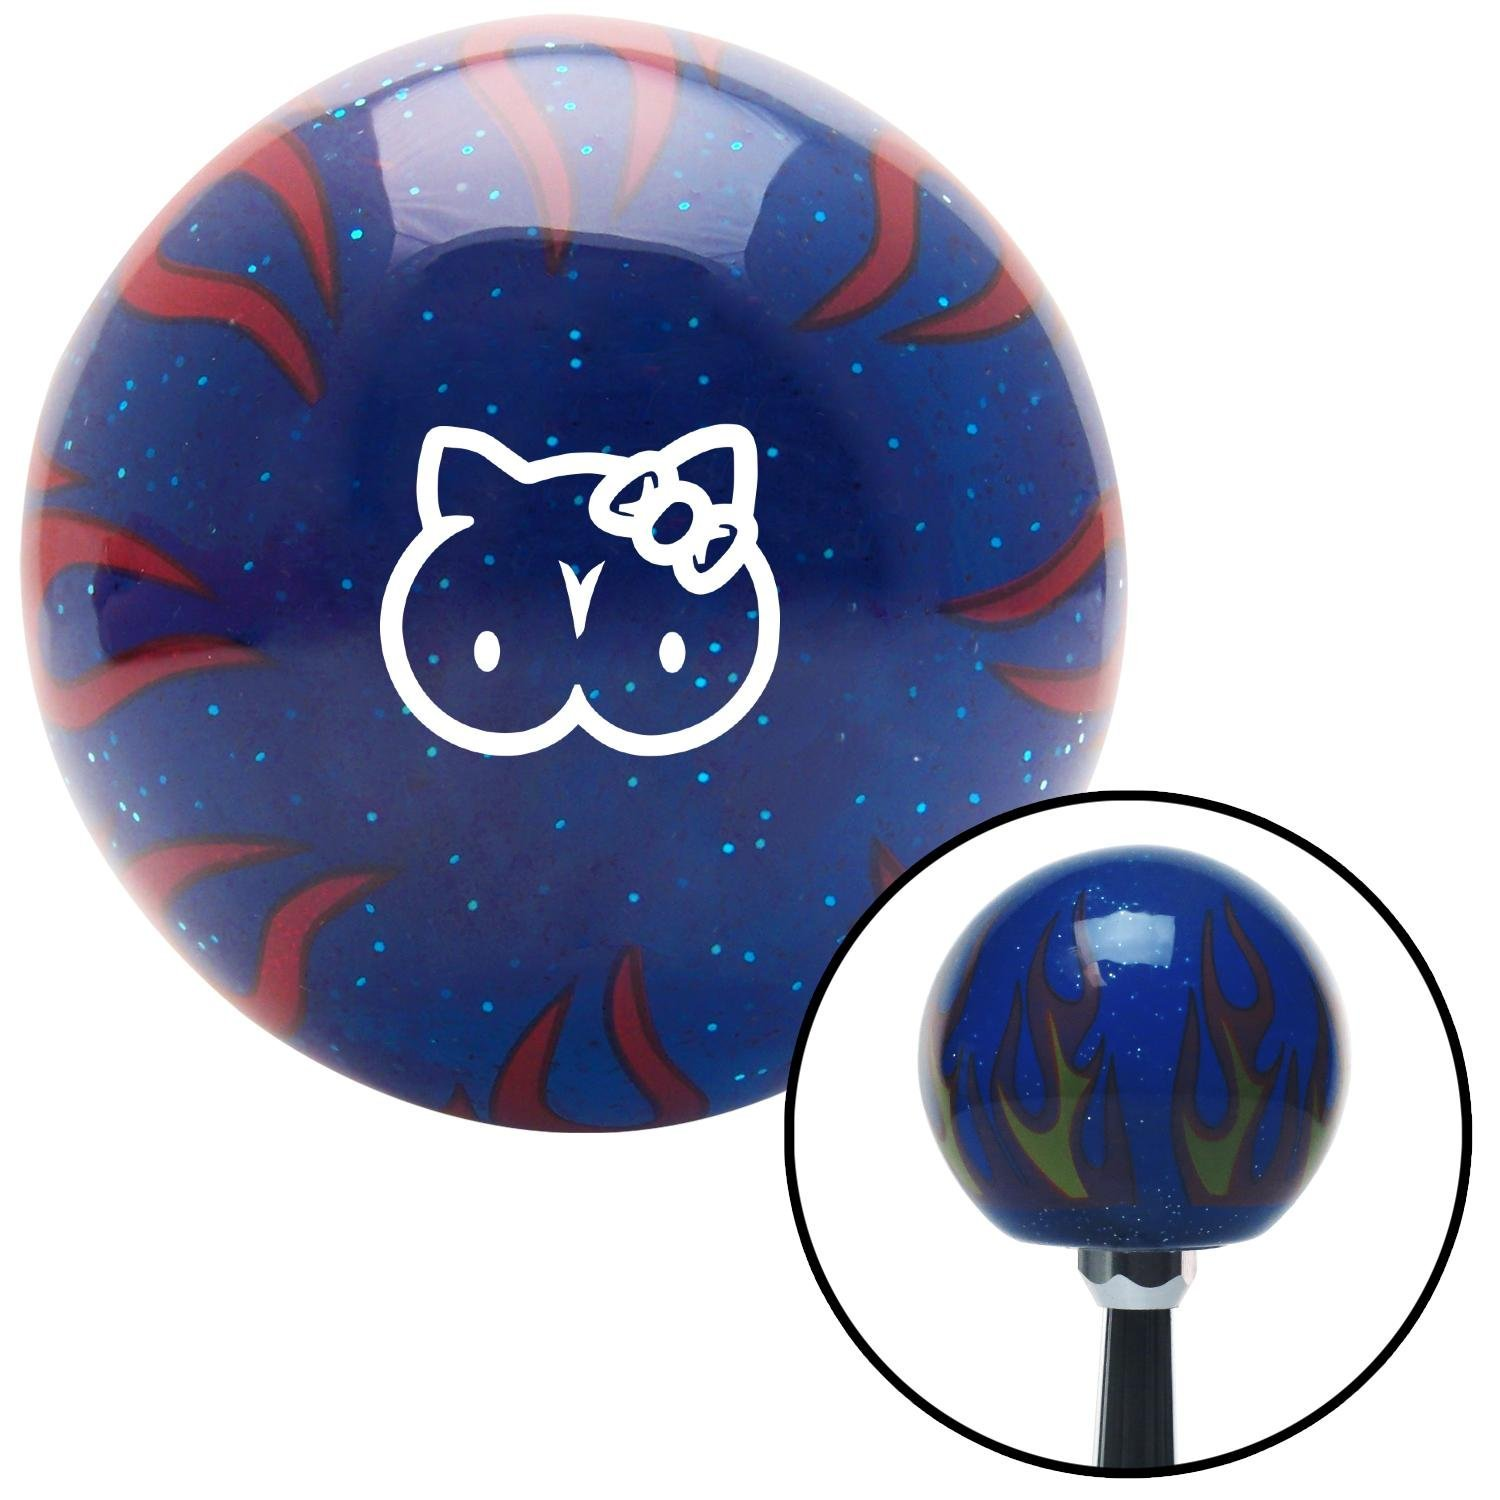 American Shifter 297738 Shift Knob White Hello Titty Blue Flame Metal Flake with M16 x 1.5 Insert